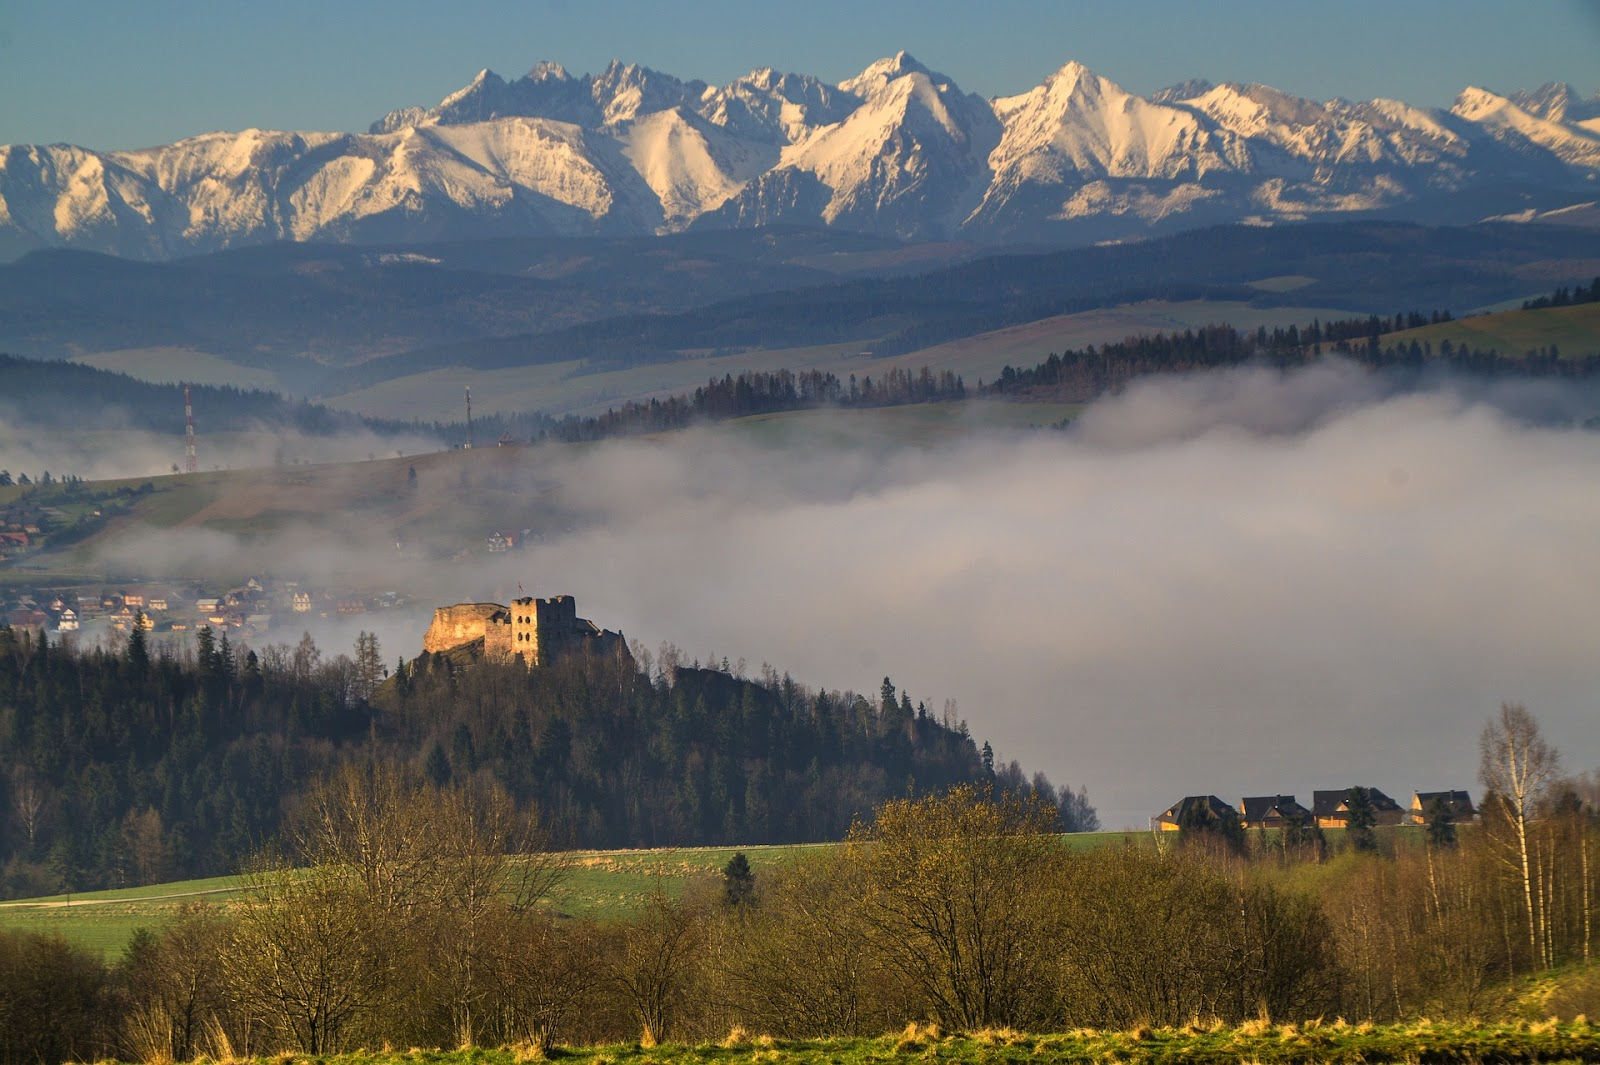 castle ruins in a cloudy forest with tall snow-covered tatry mountains in background during sunset in poland